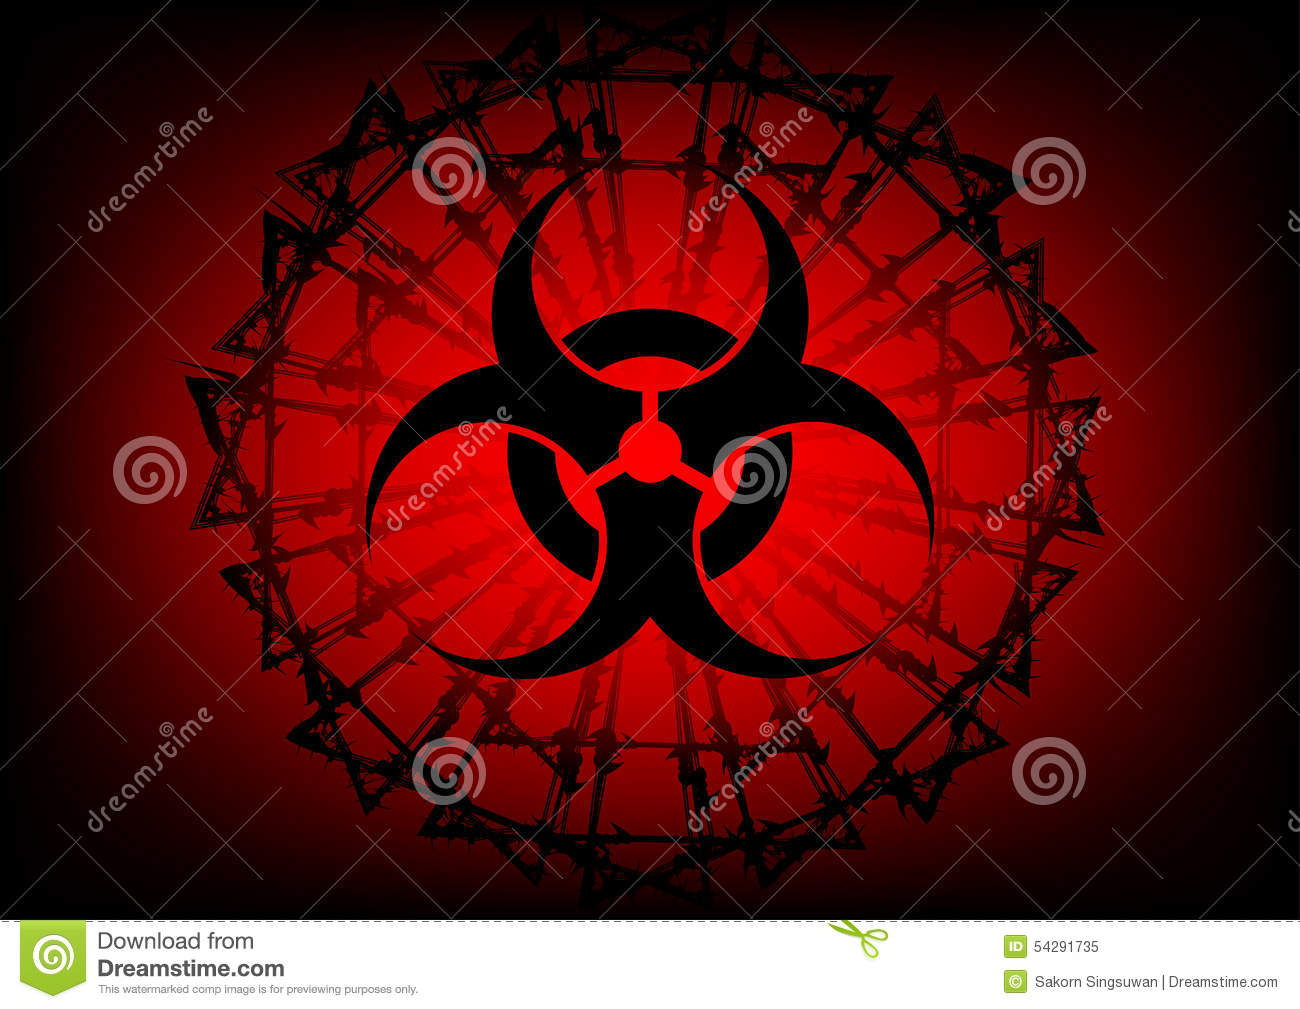 Biohazard symbol and barbed wire on red background stock vector biohazard symbol and barbed wire on red background biocorpaavc Images